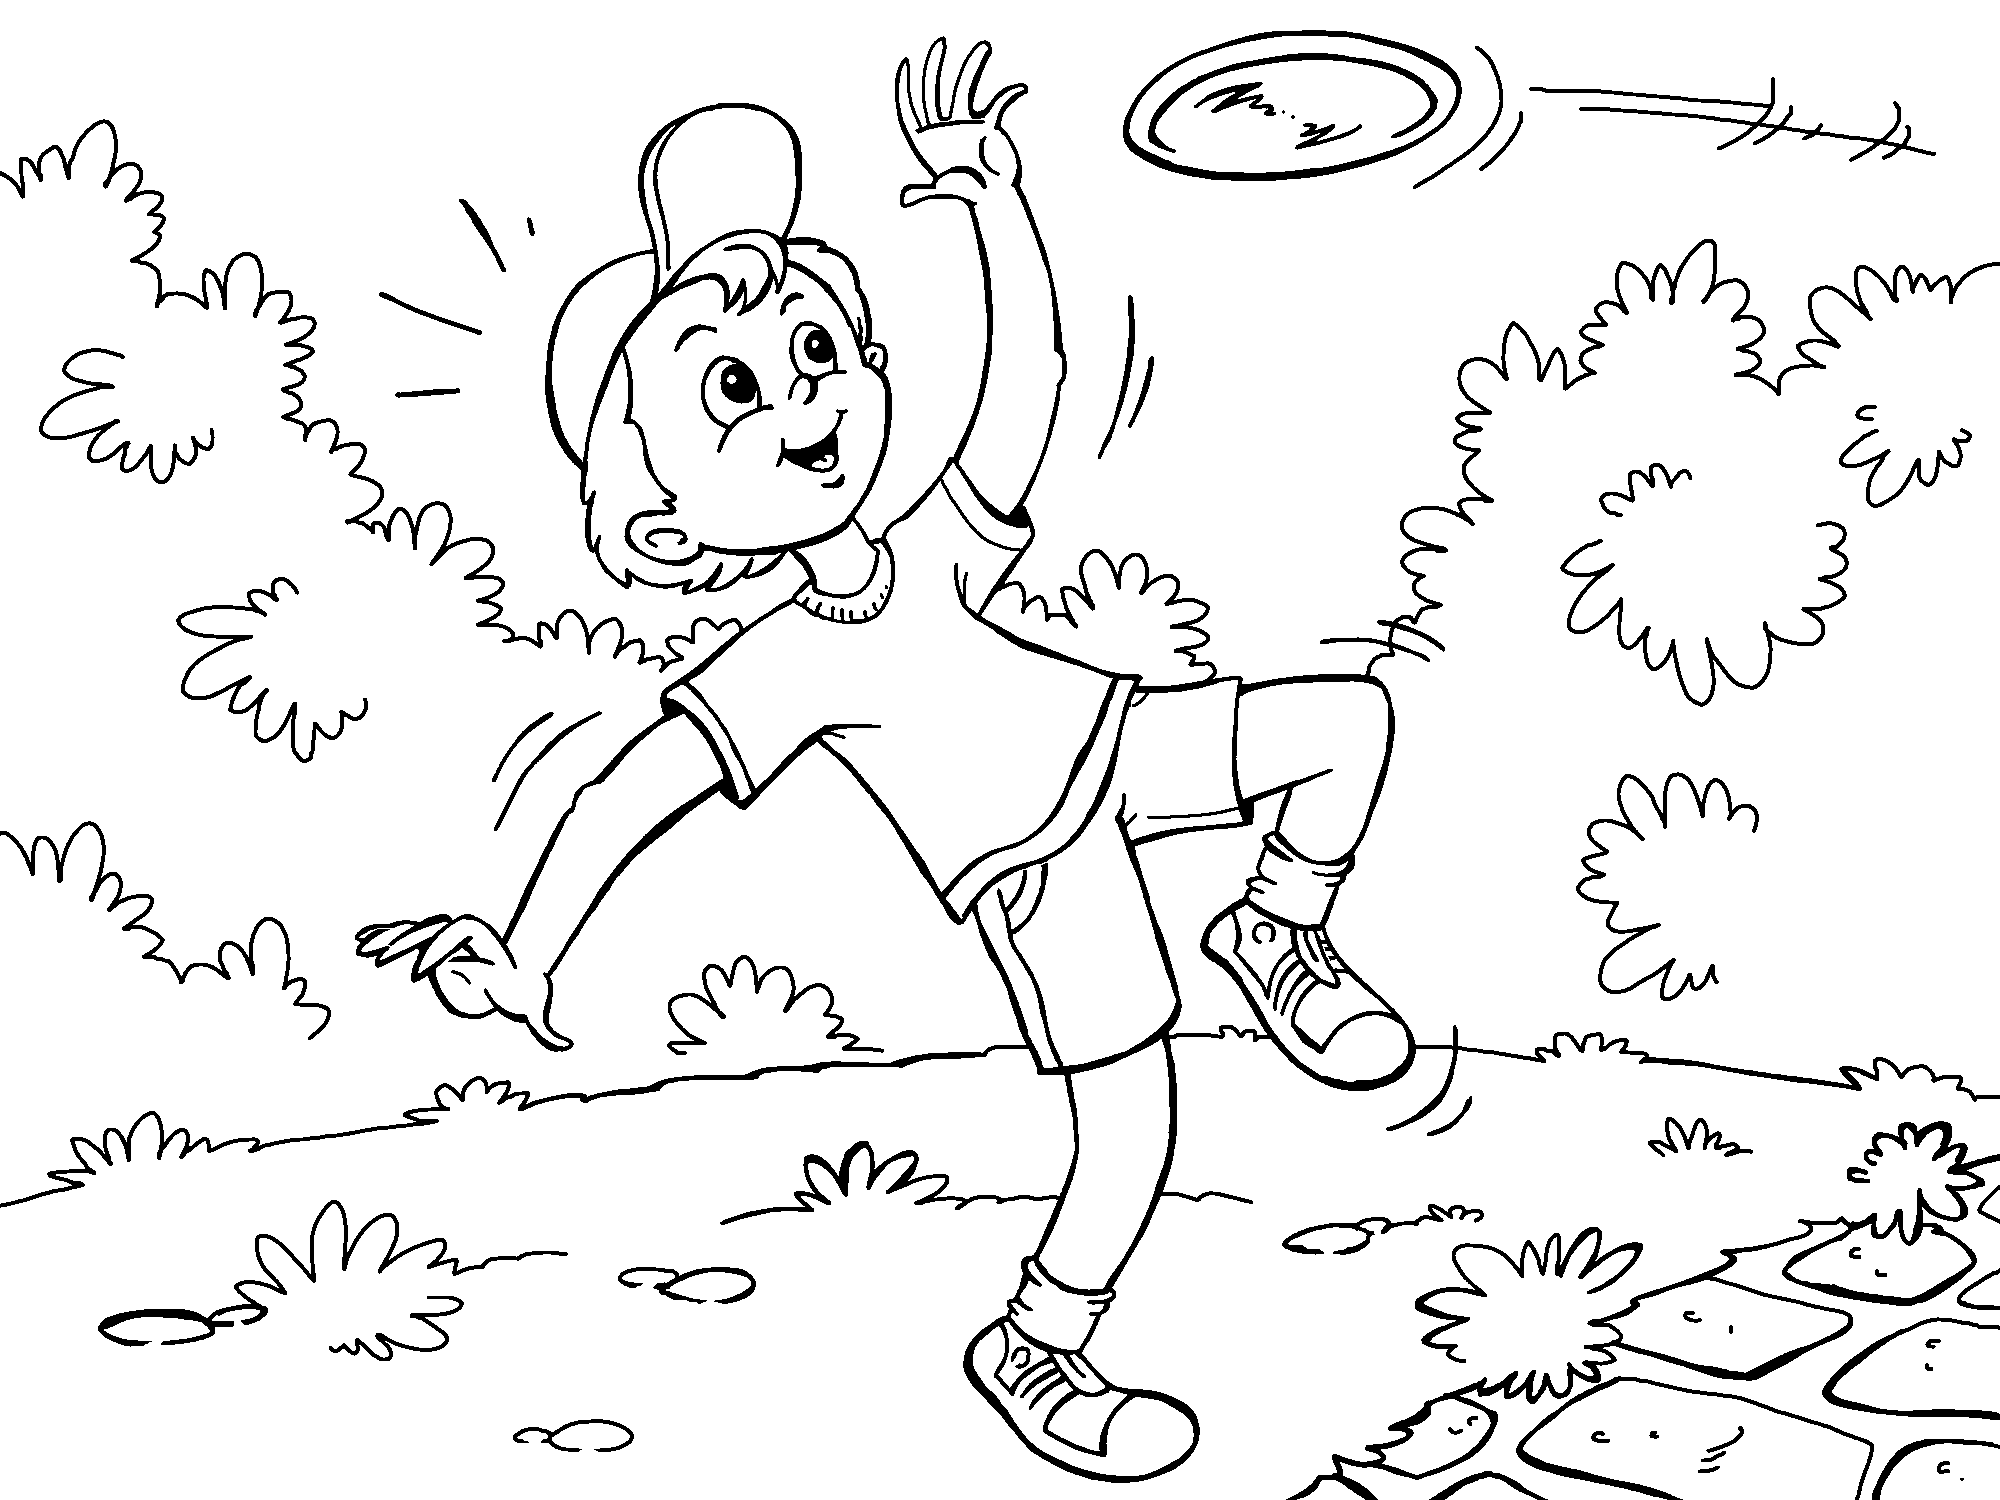 Boy Frisbee Coloring Page Online Coloring Pages Online Coloring Kids Playing